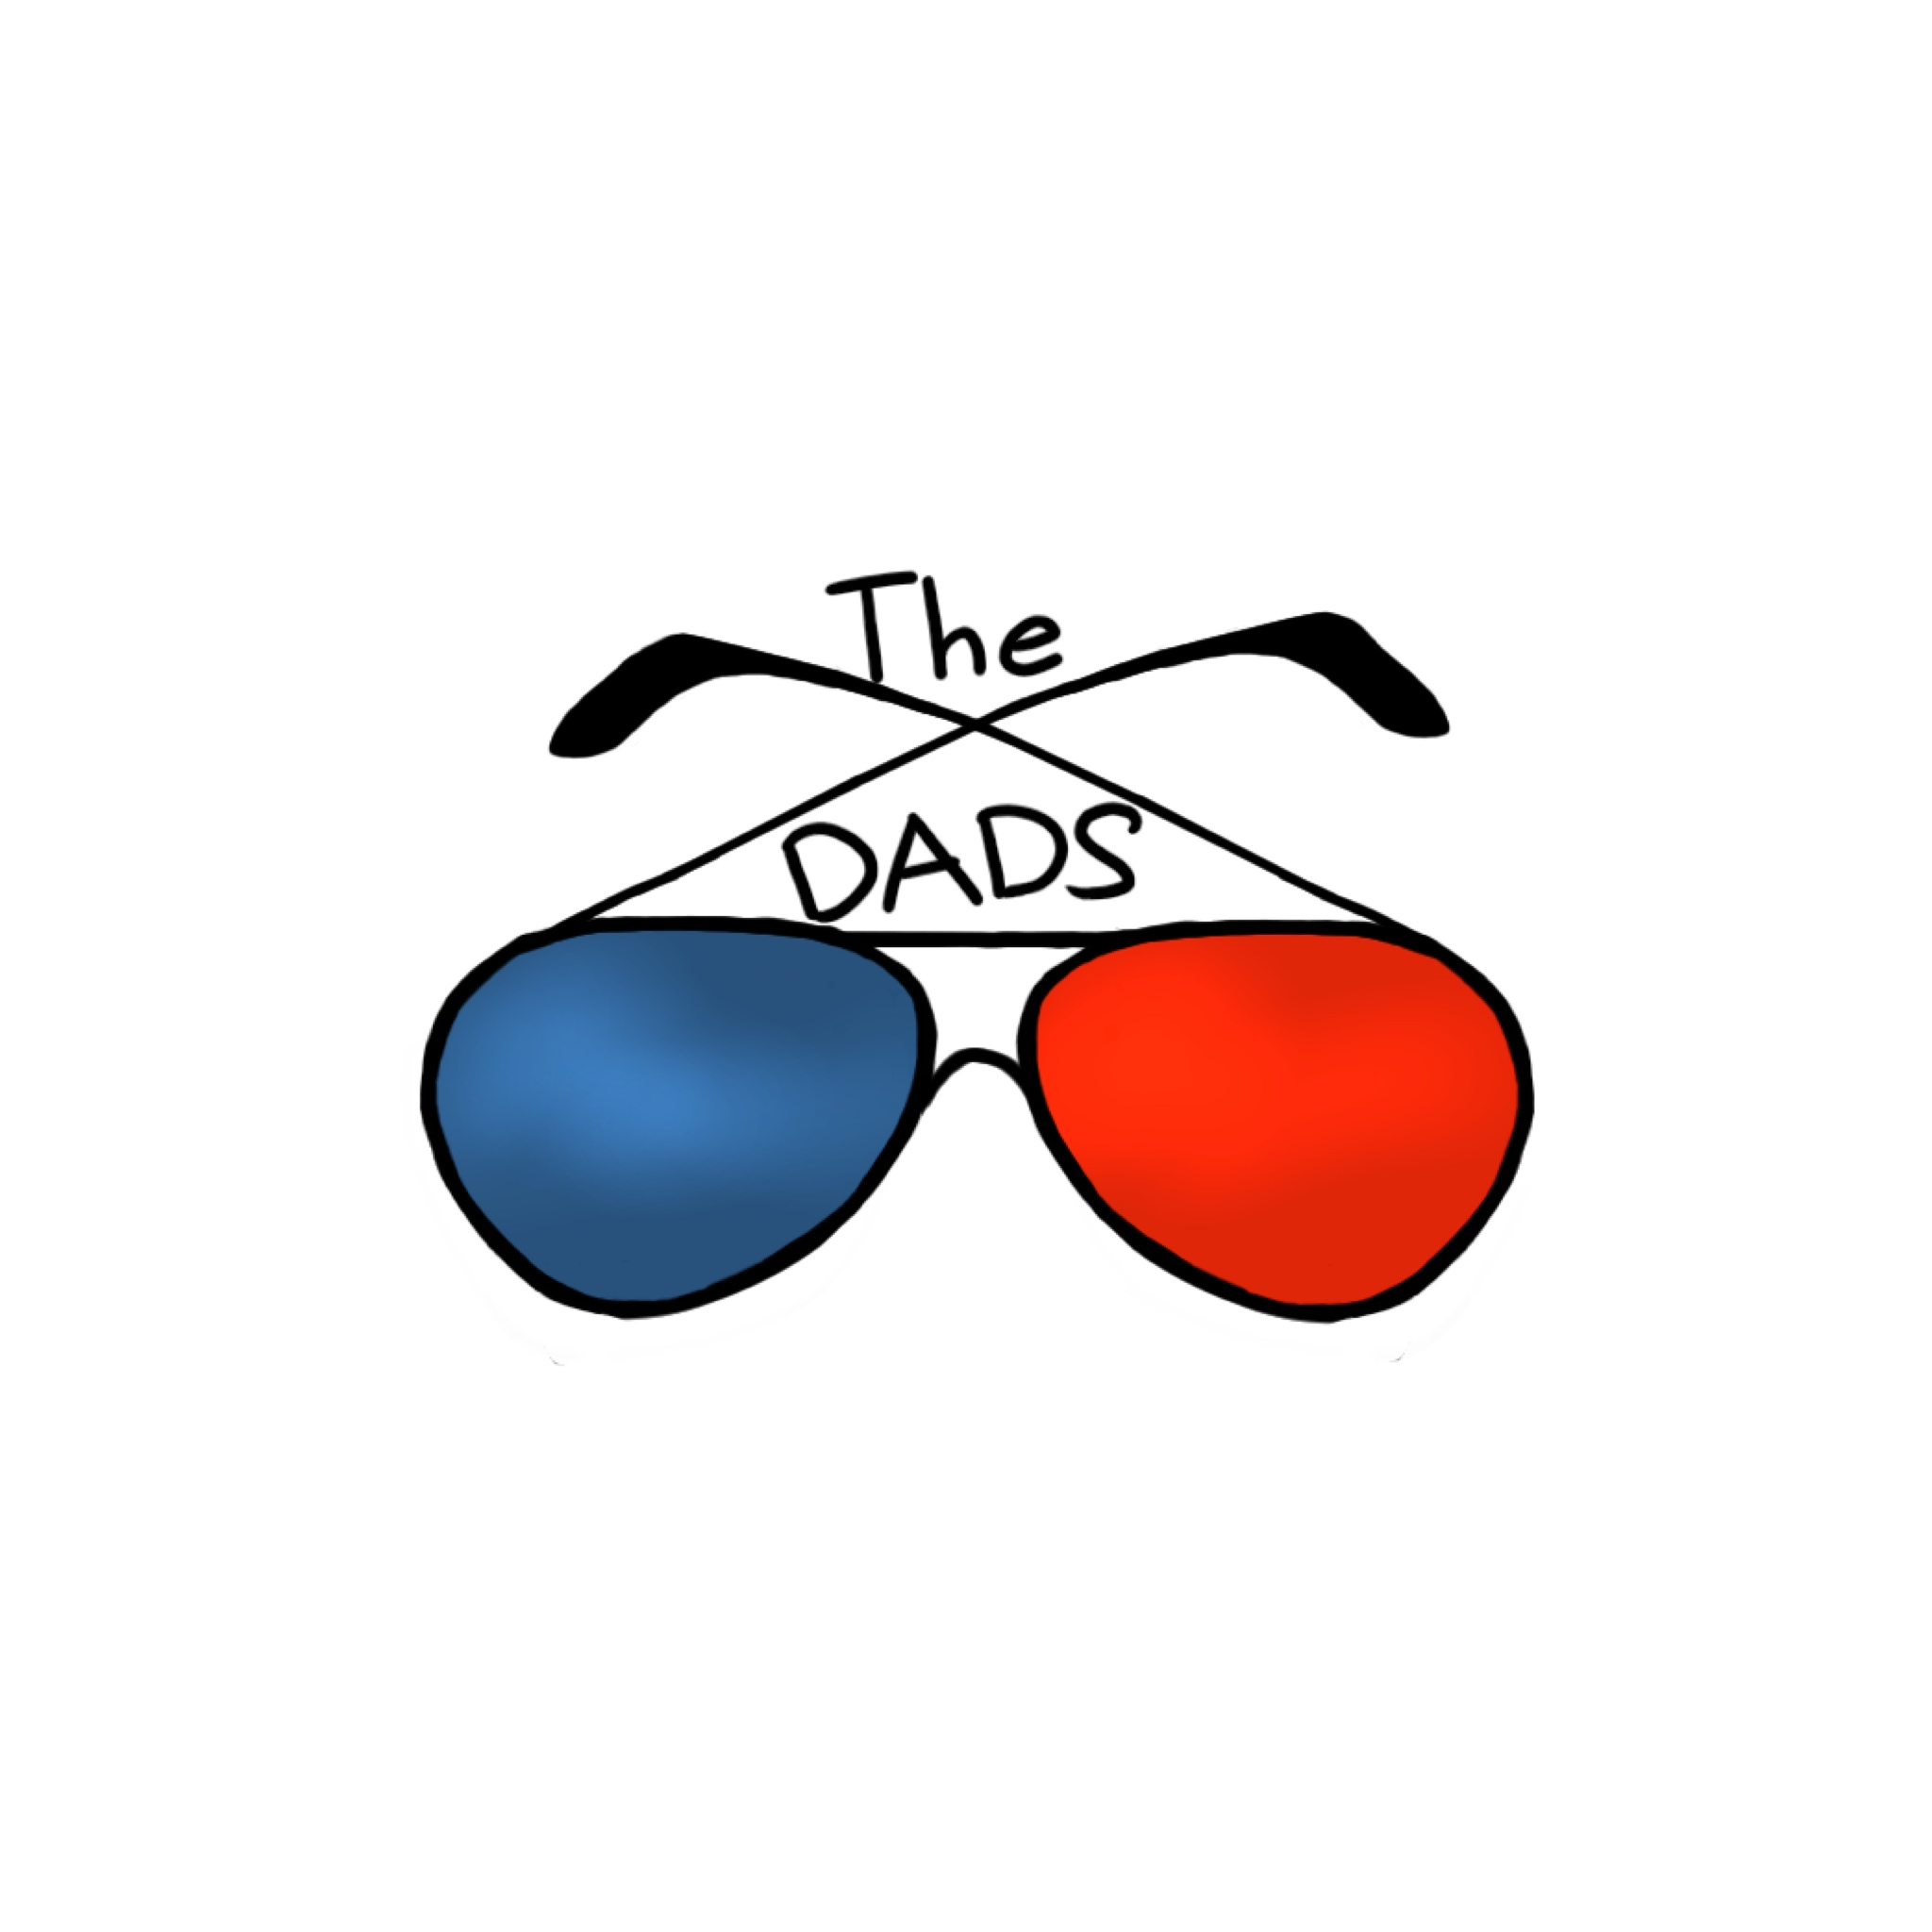 The Dads - default icon